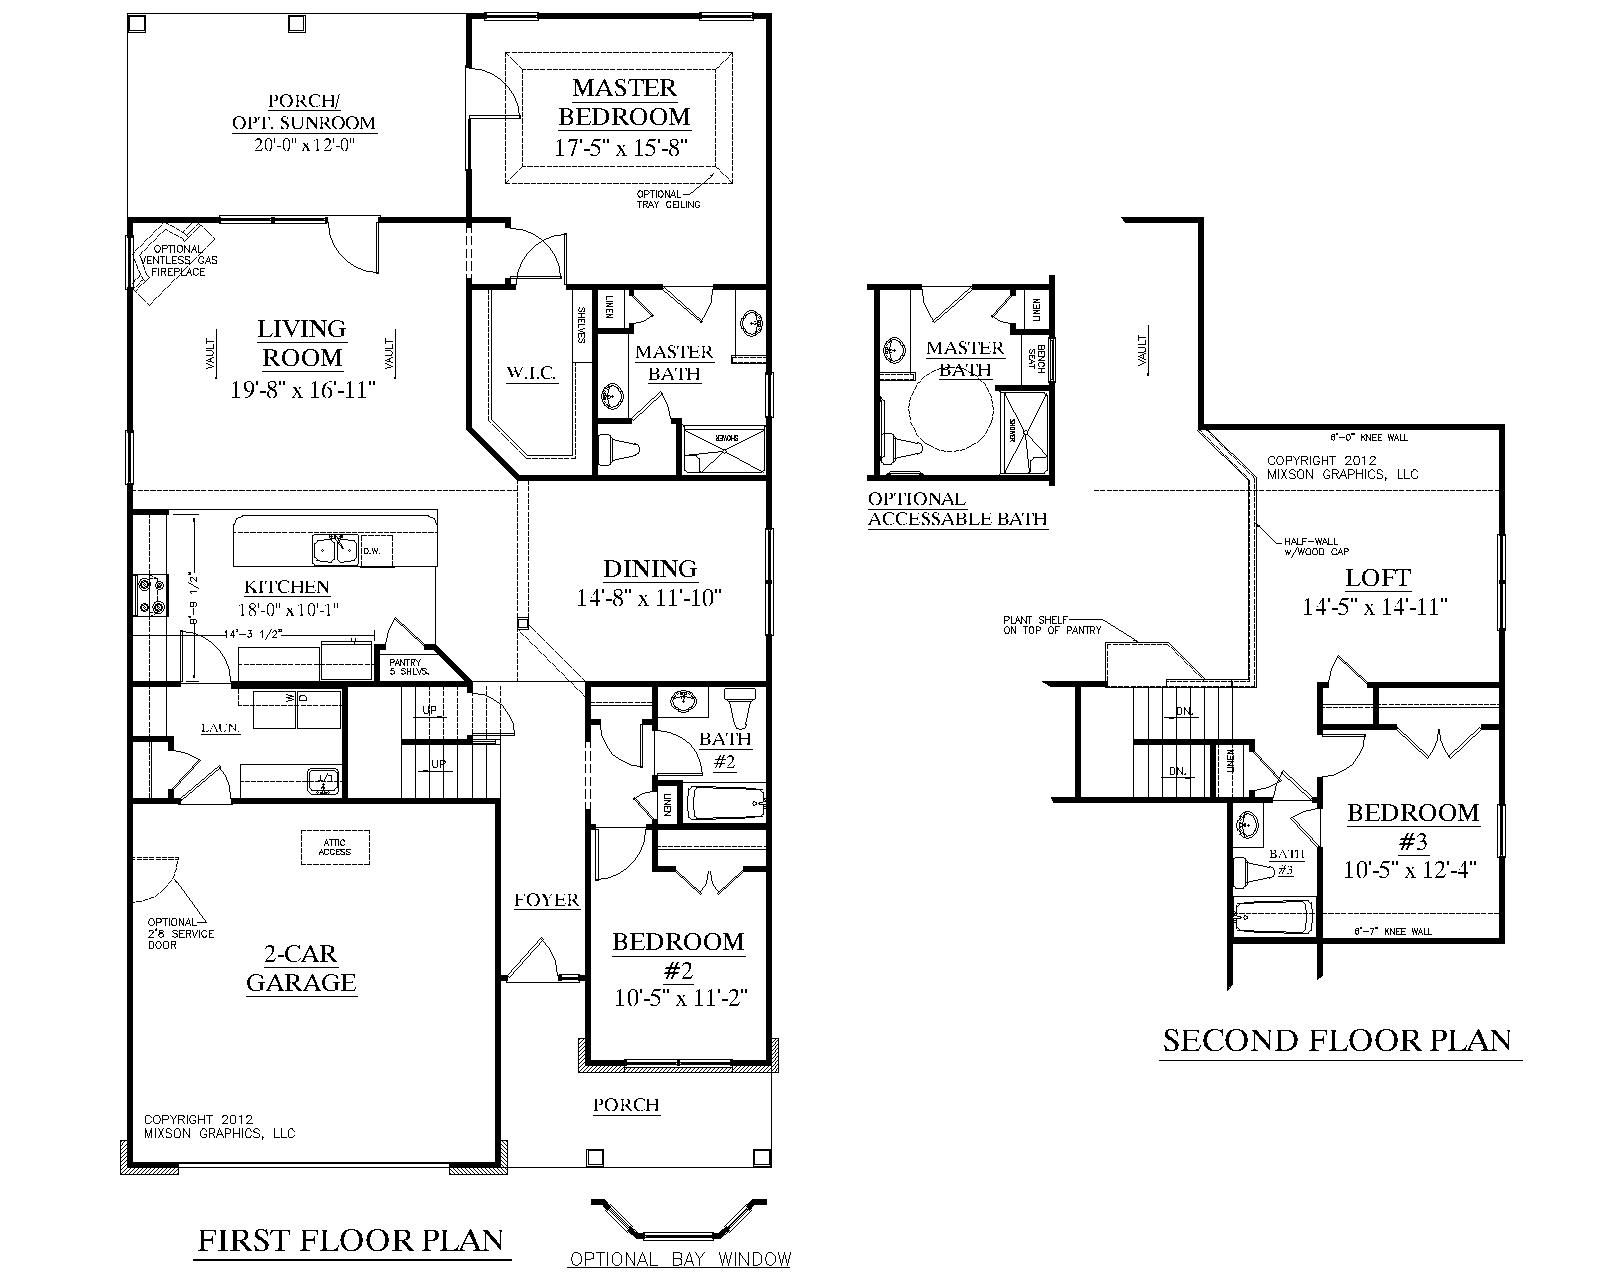 House Plan 2224 Kingstree Floor Plan Traditional 1 1 2 Story House Plan With 3 Bedrooms And 3 Baths House Plan With Loft Unique House Plans House Floor Plans